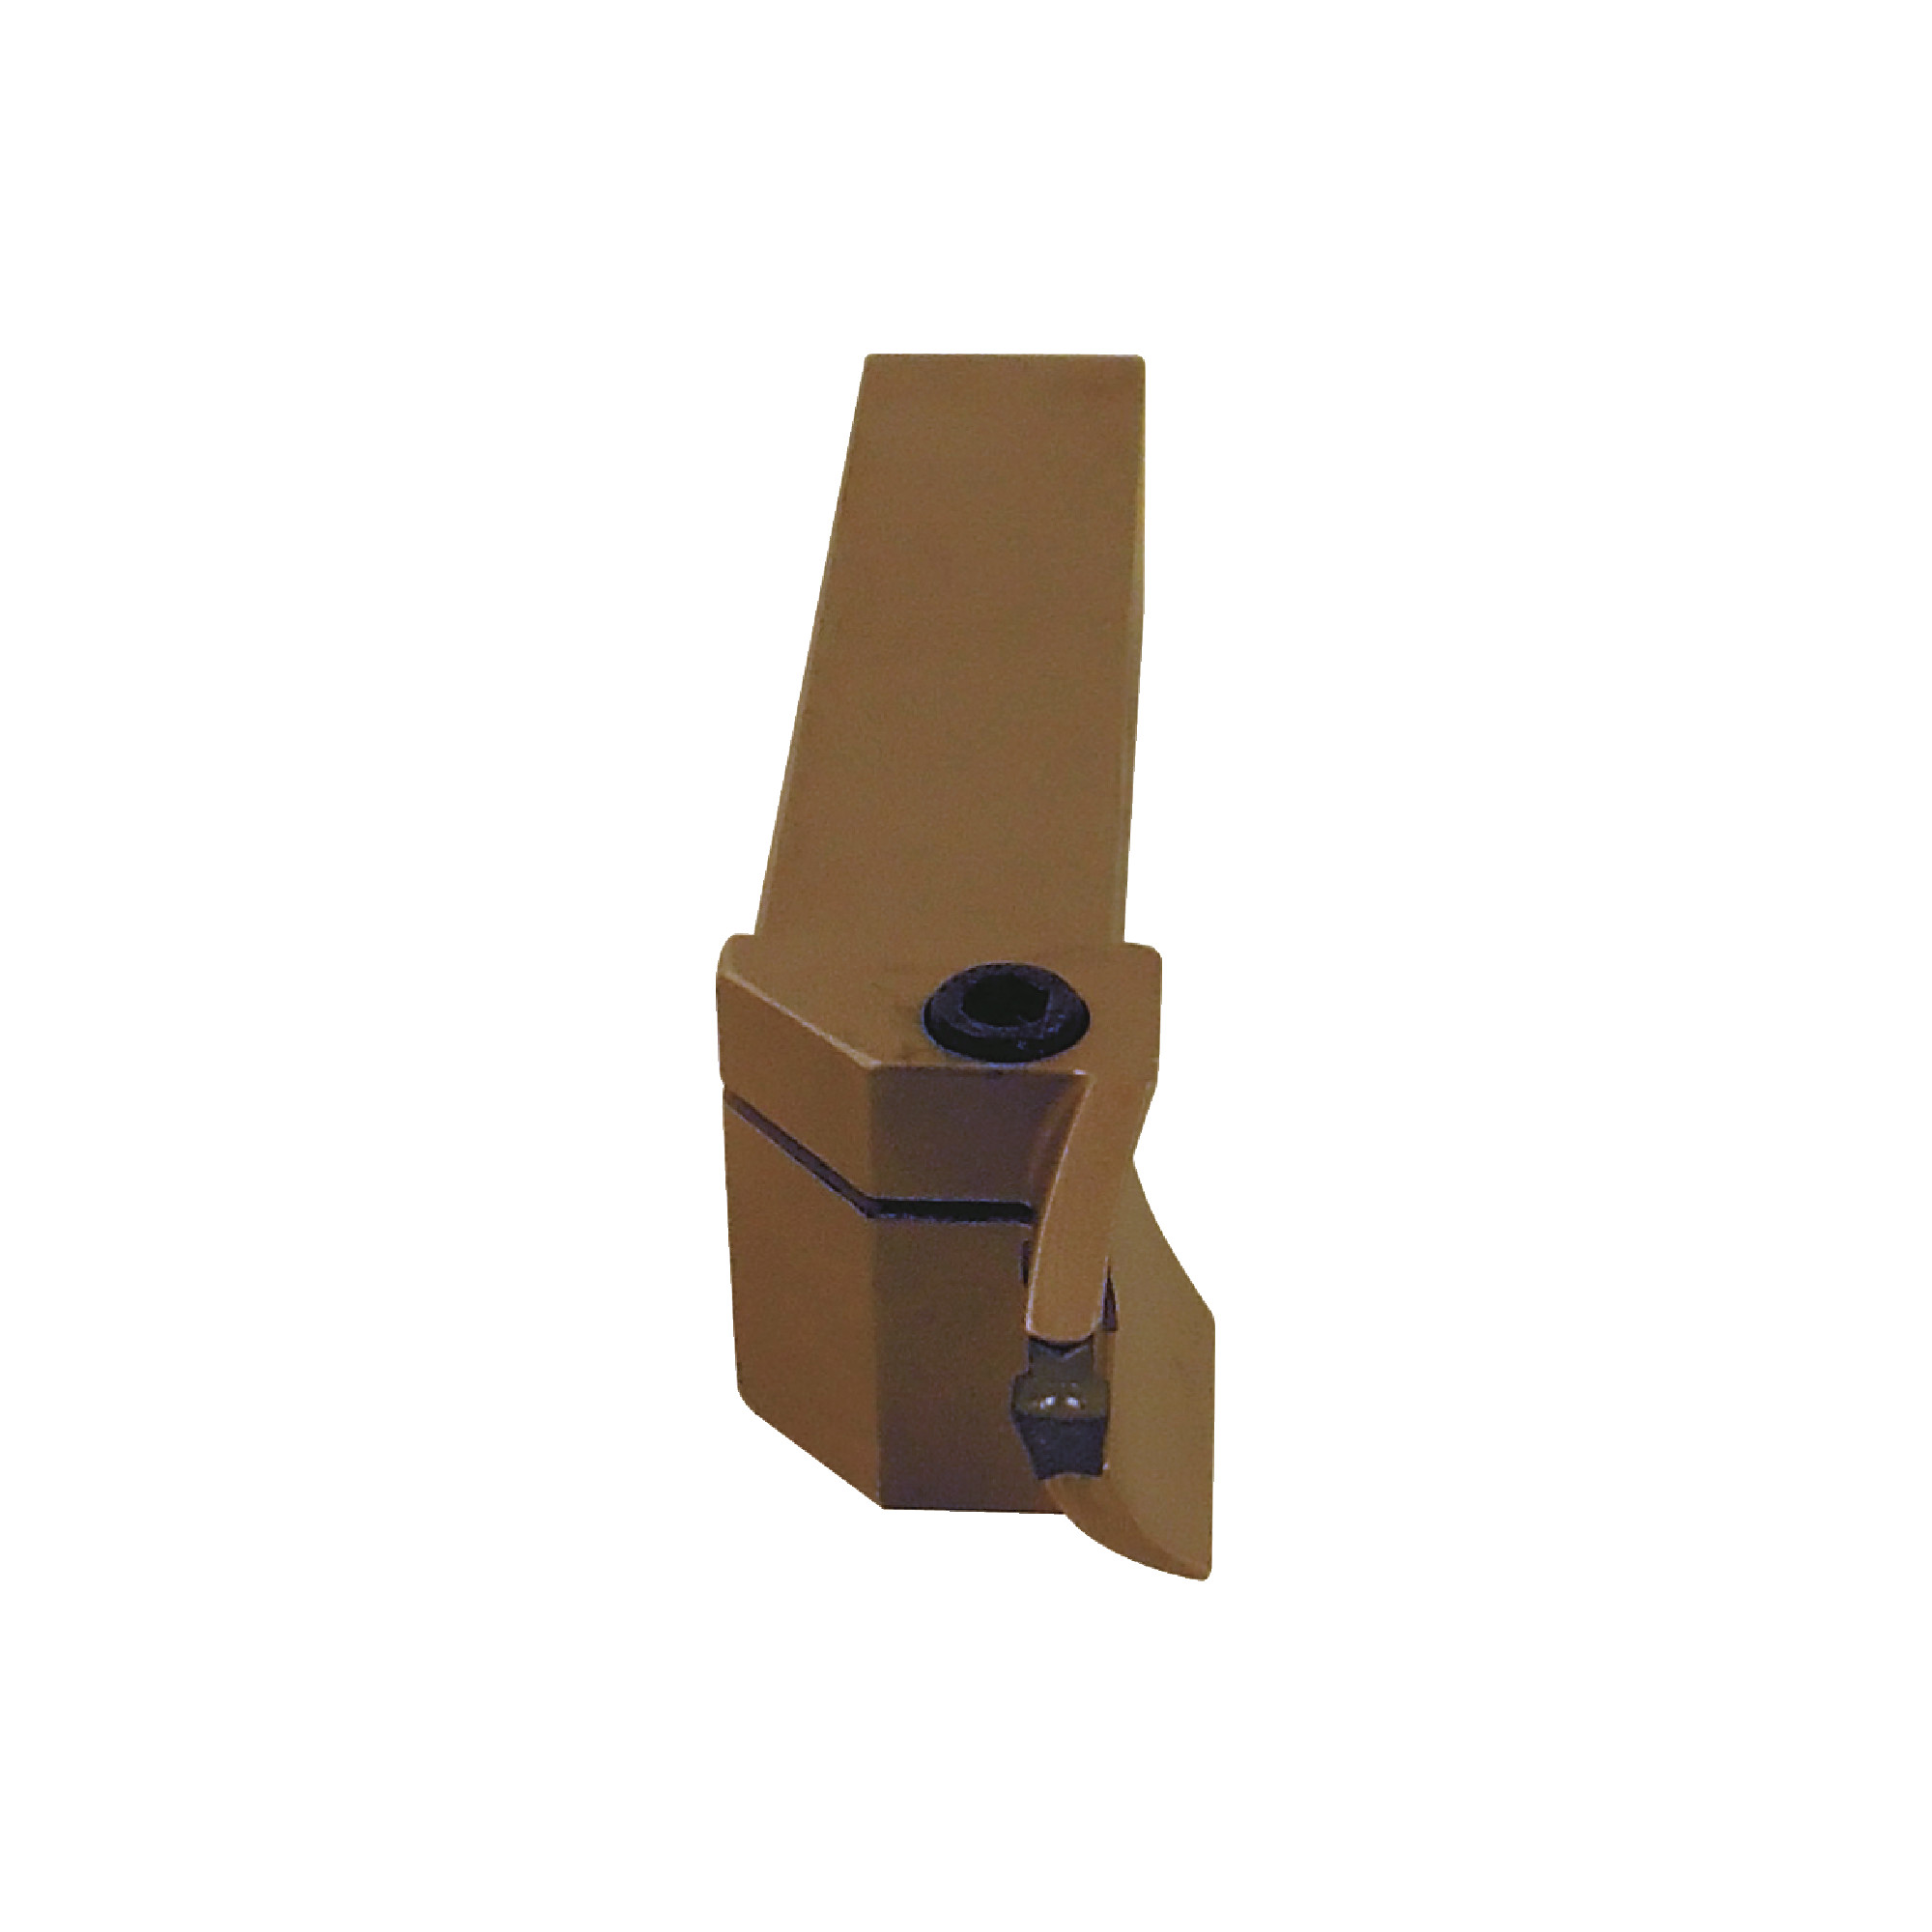 """ISCAR - HFHR25.4-38-6T20 / 1.000"""" Shank / External Monoblock Holder for Face Grooving / HFPR 6 Heliface Inserts / Right"""